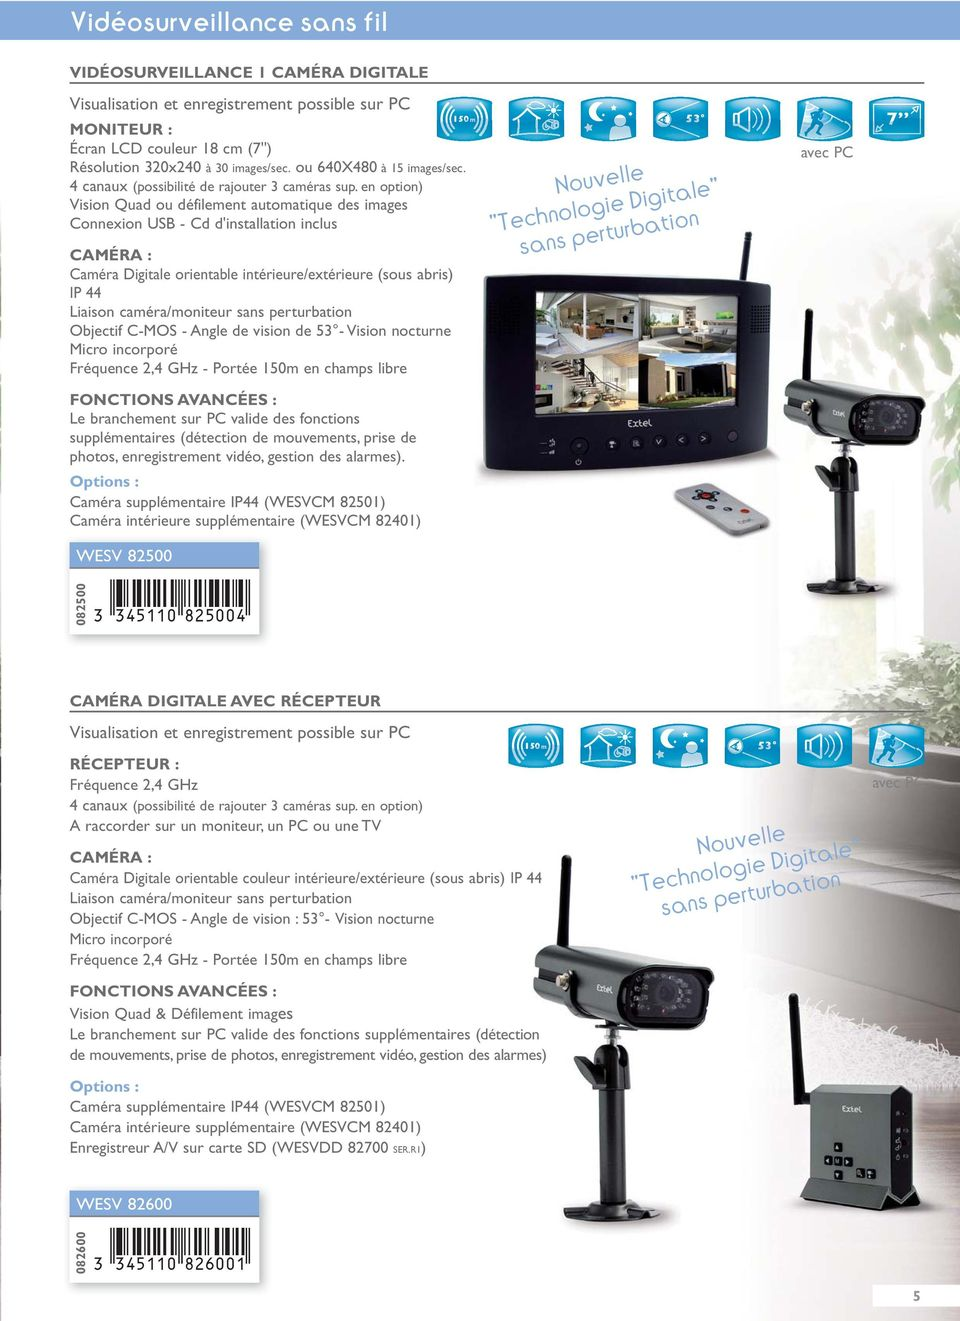 en option) Vision Quad ou défilement automatique des images Connexion USB - Cd d'installation inclus CAMÉRA : Caméra Digitale orientable intérieure/extérieure (sous s abris) IP 44 Liaison